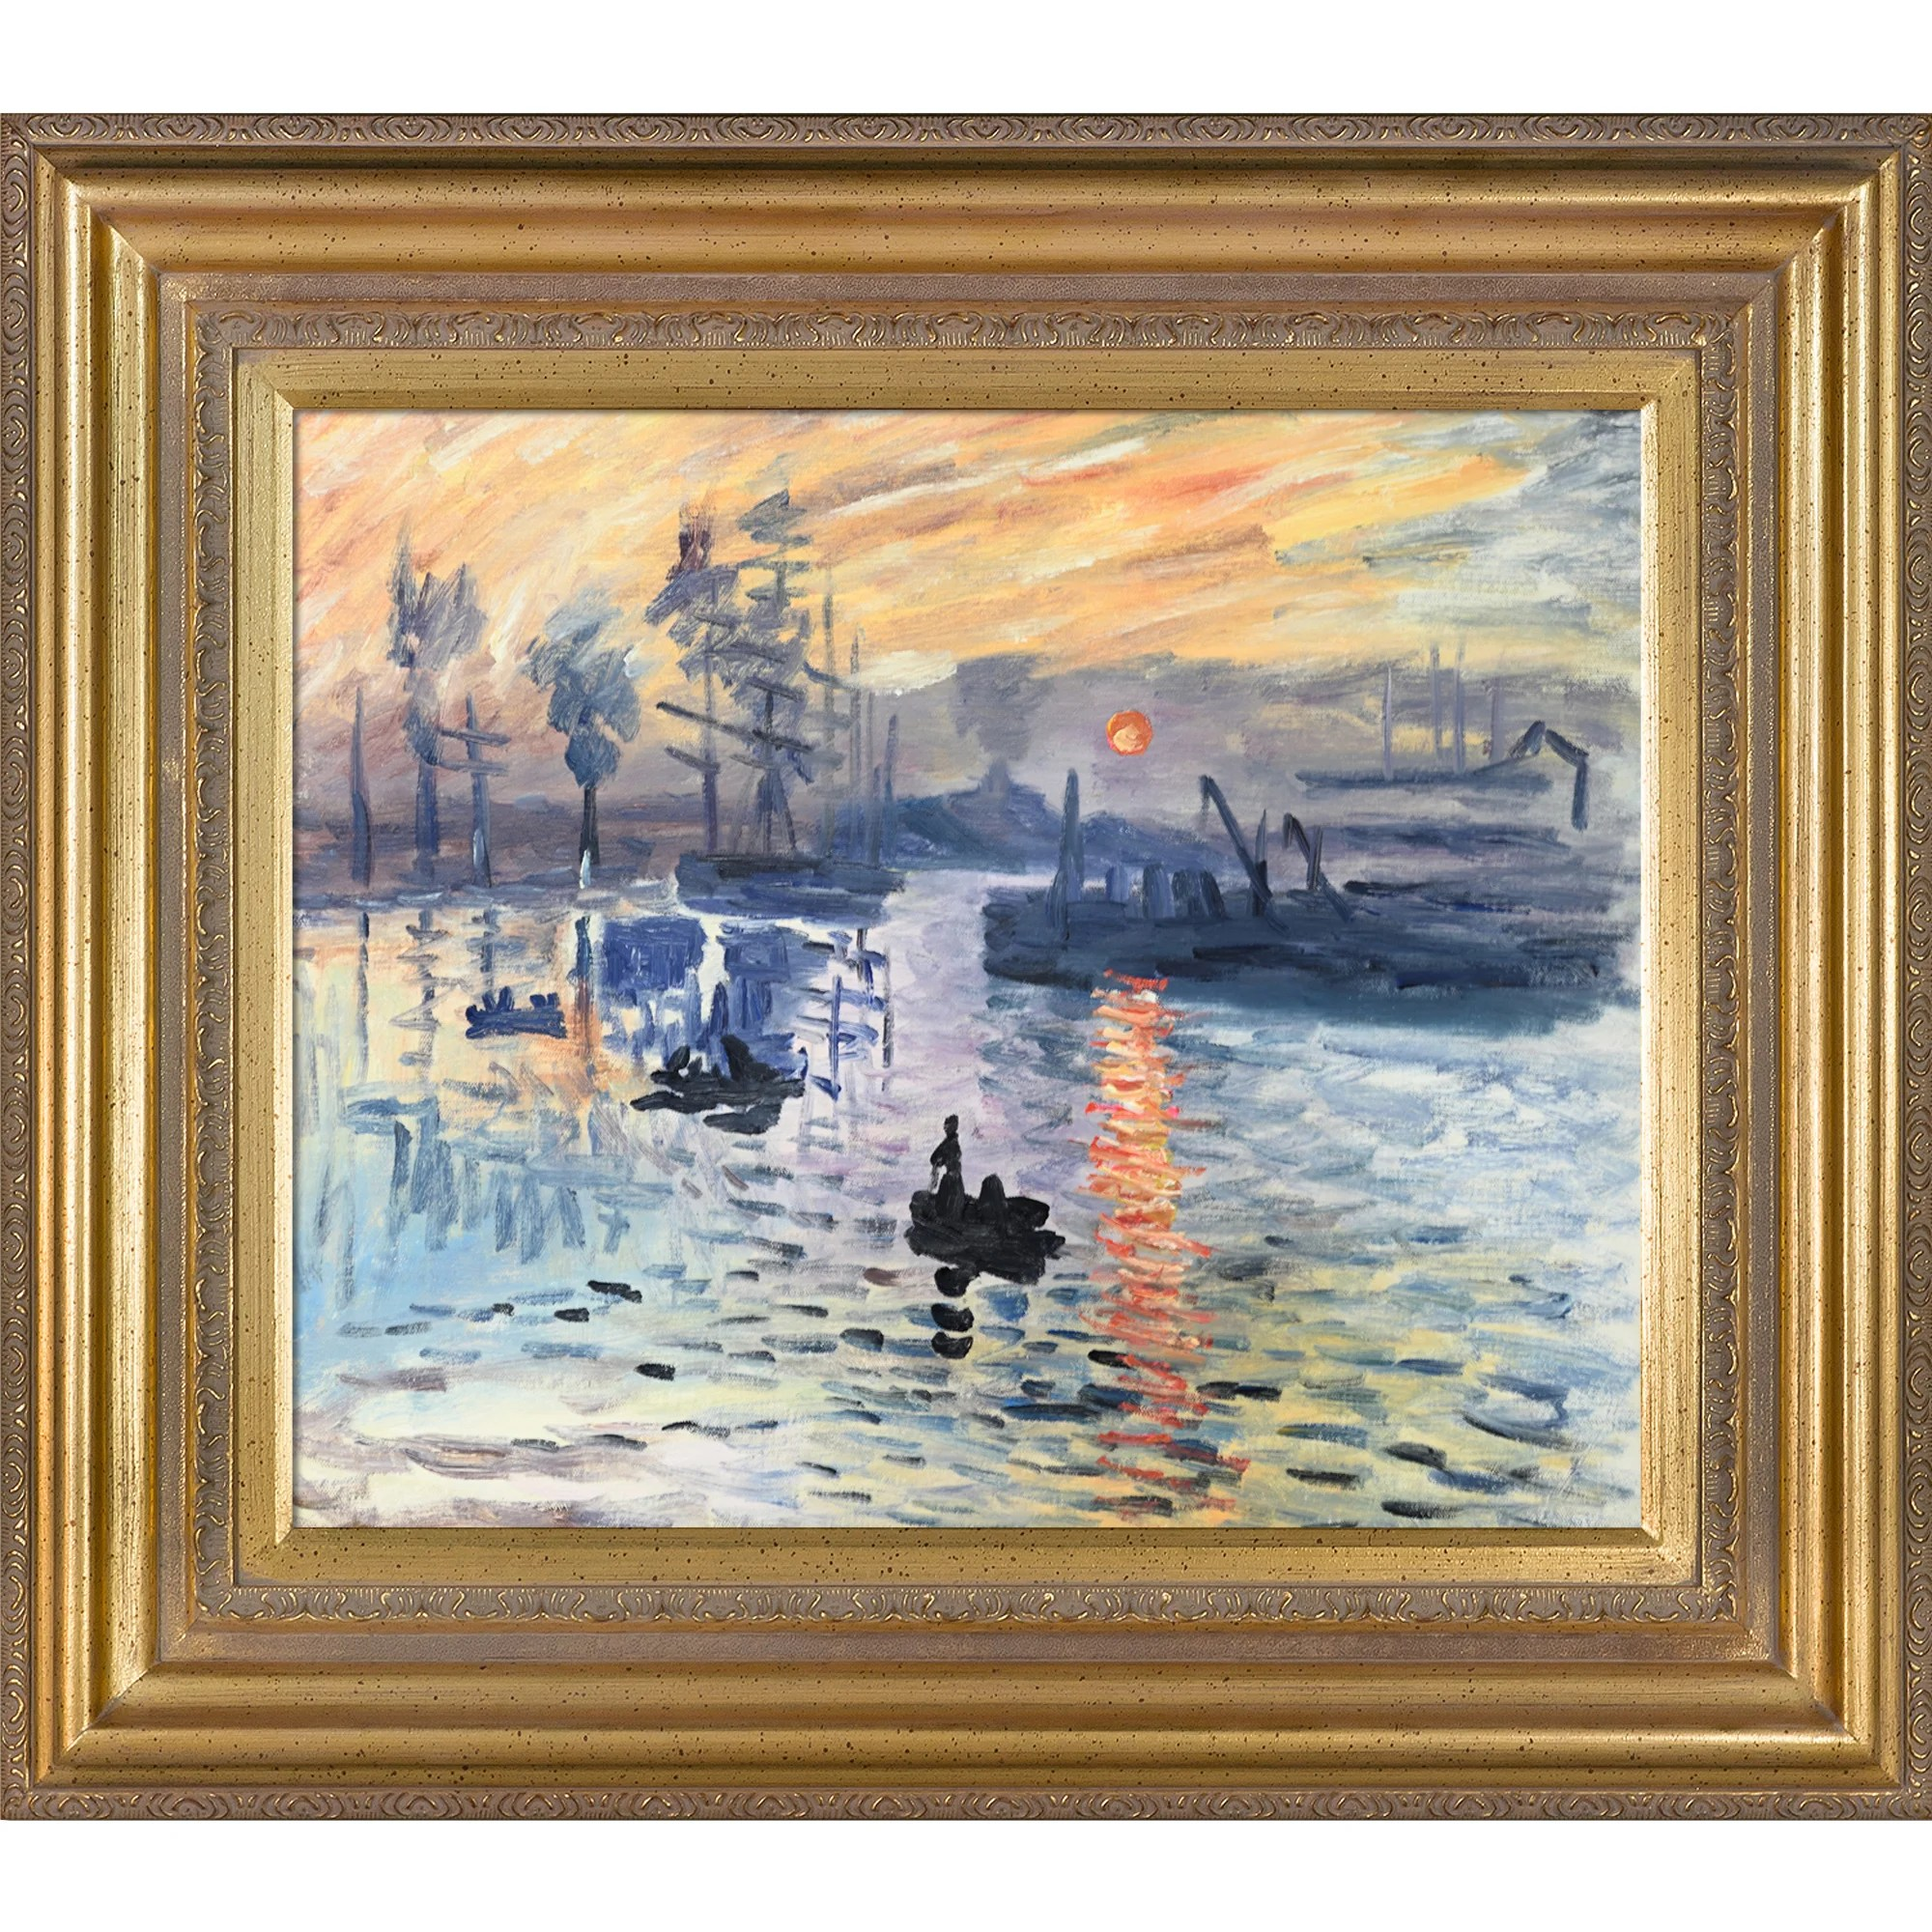 Fly Argenteuil Impression Sunrise By Claude Monet Framed Painting